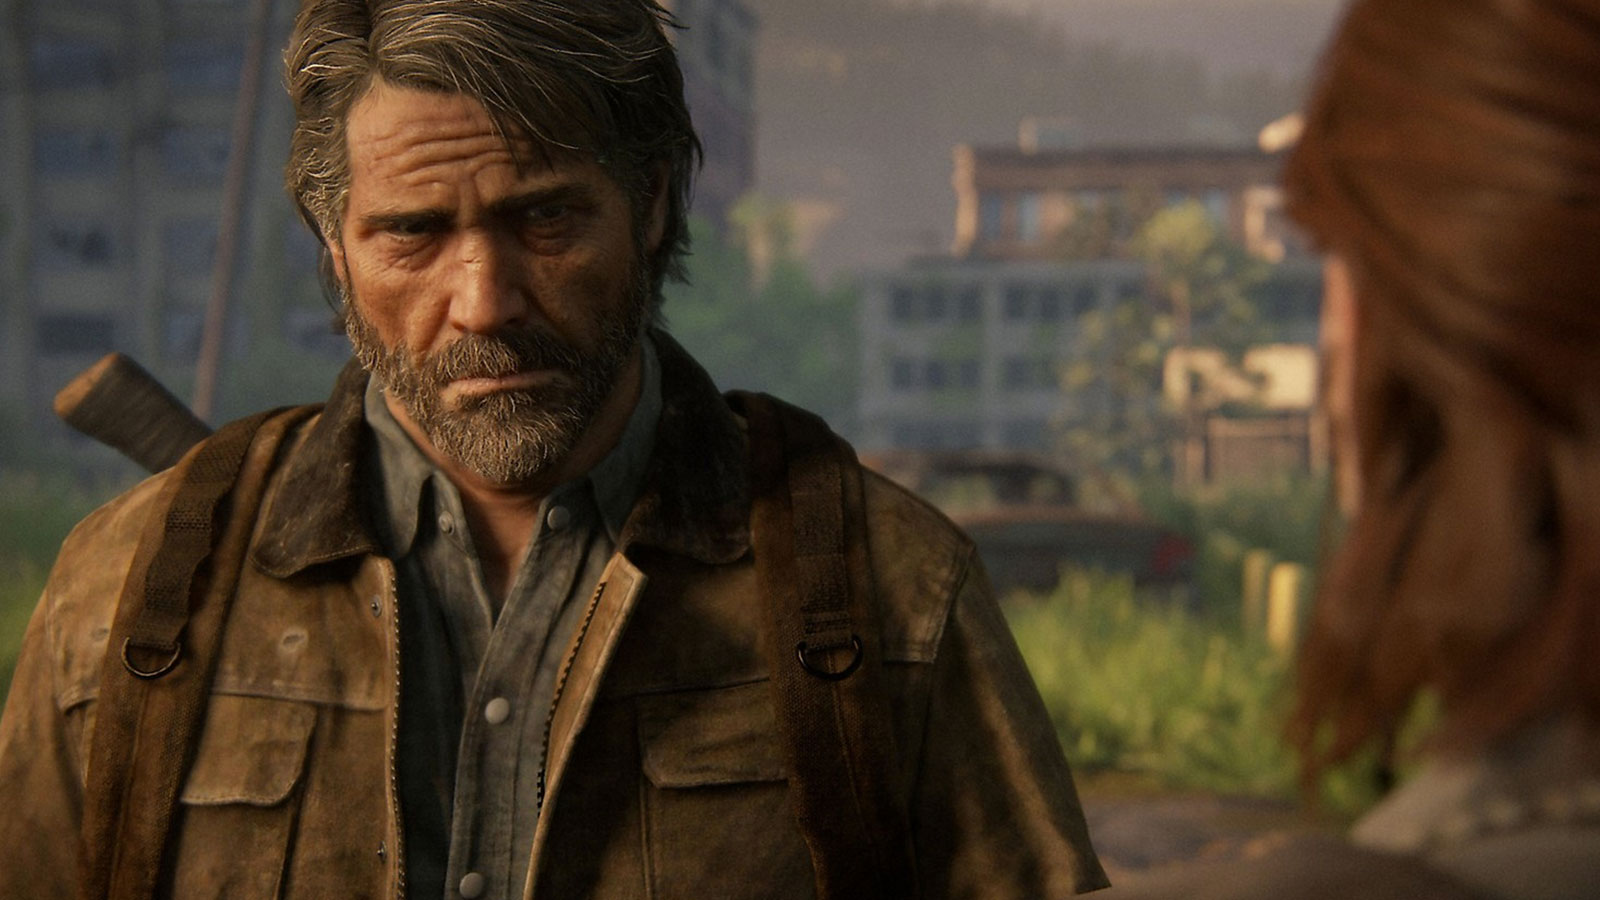 Another of the Last of Us Part II leaks has major implications for Joel in the long-awaited sequel.